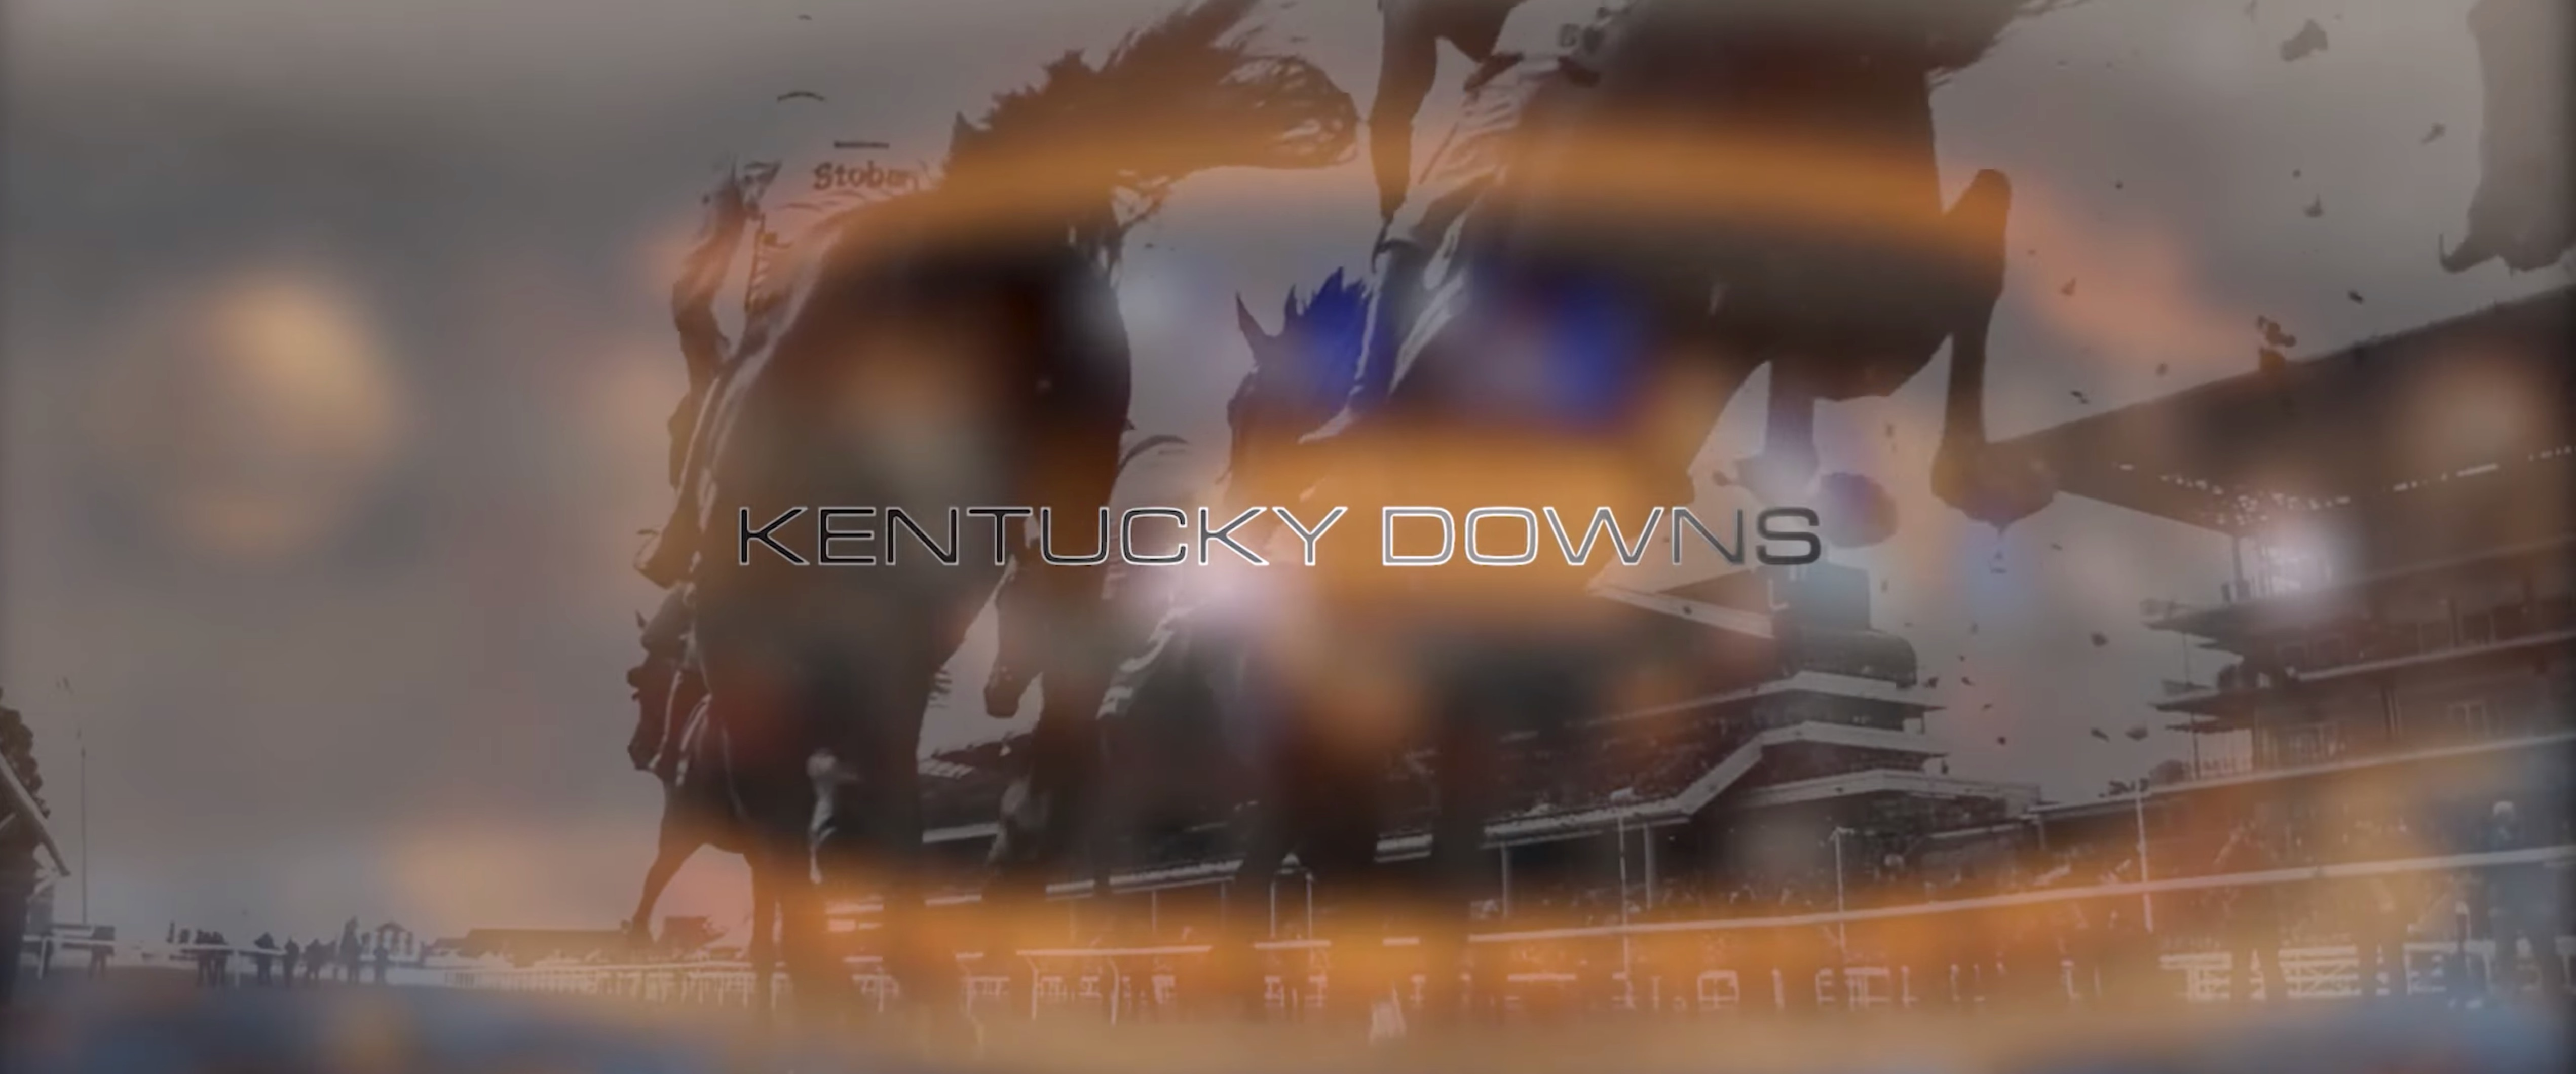 Kentucky Downs Gaming Choses Casino Air Technology…